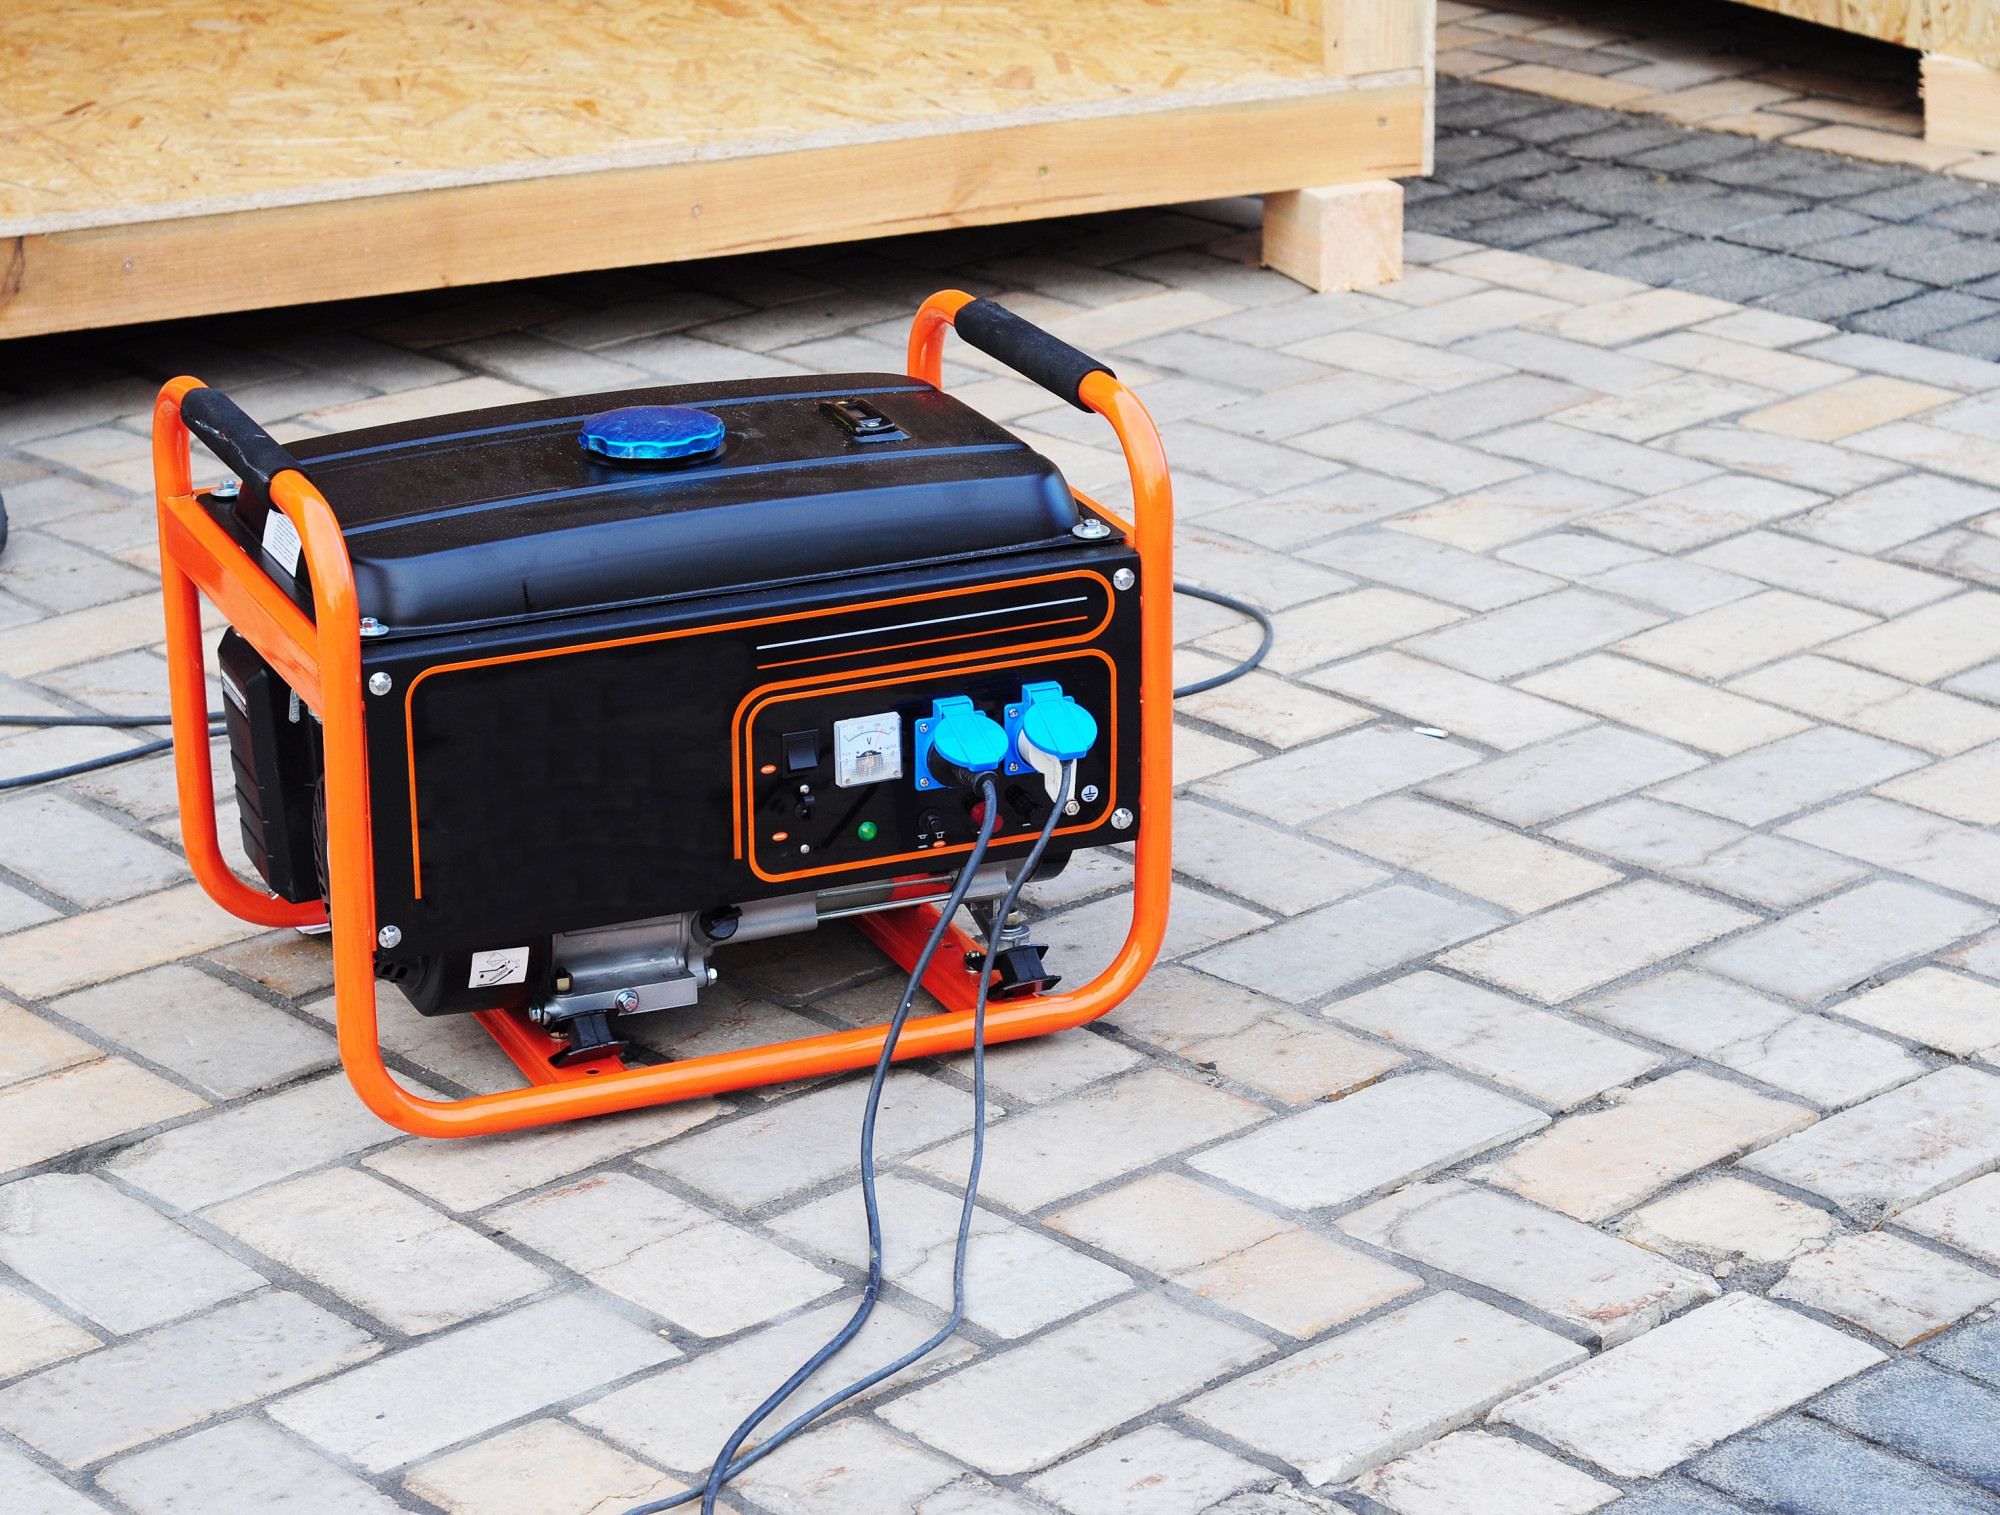 4 Reasons to Buy a Portable Power Generator for Home